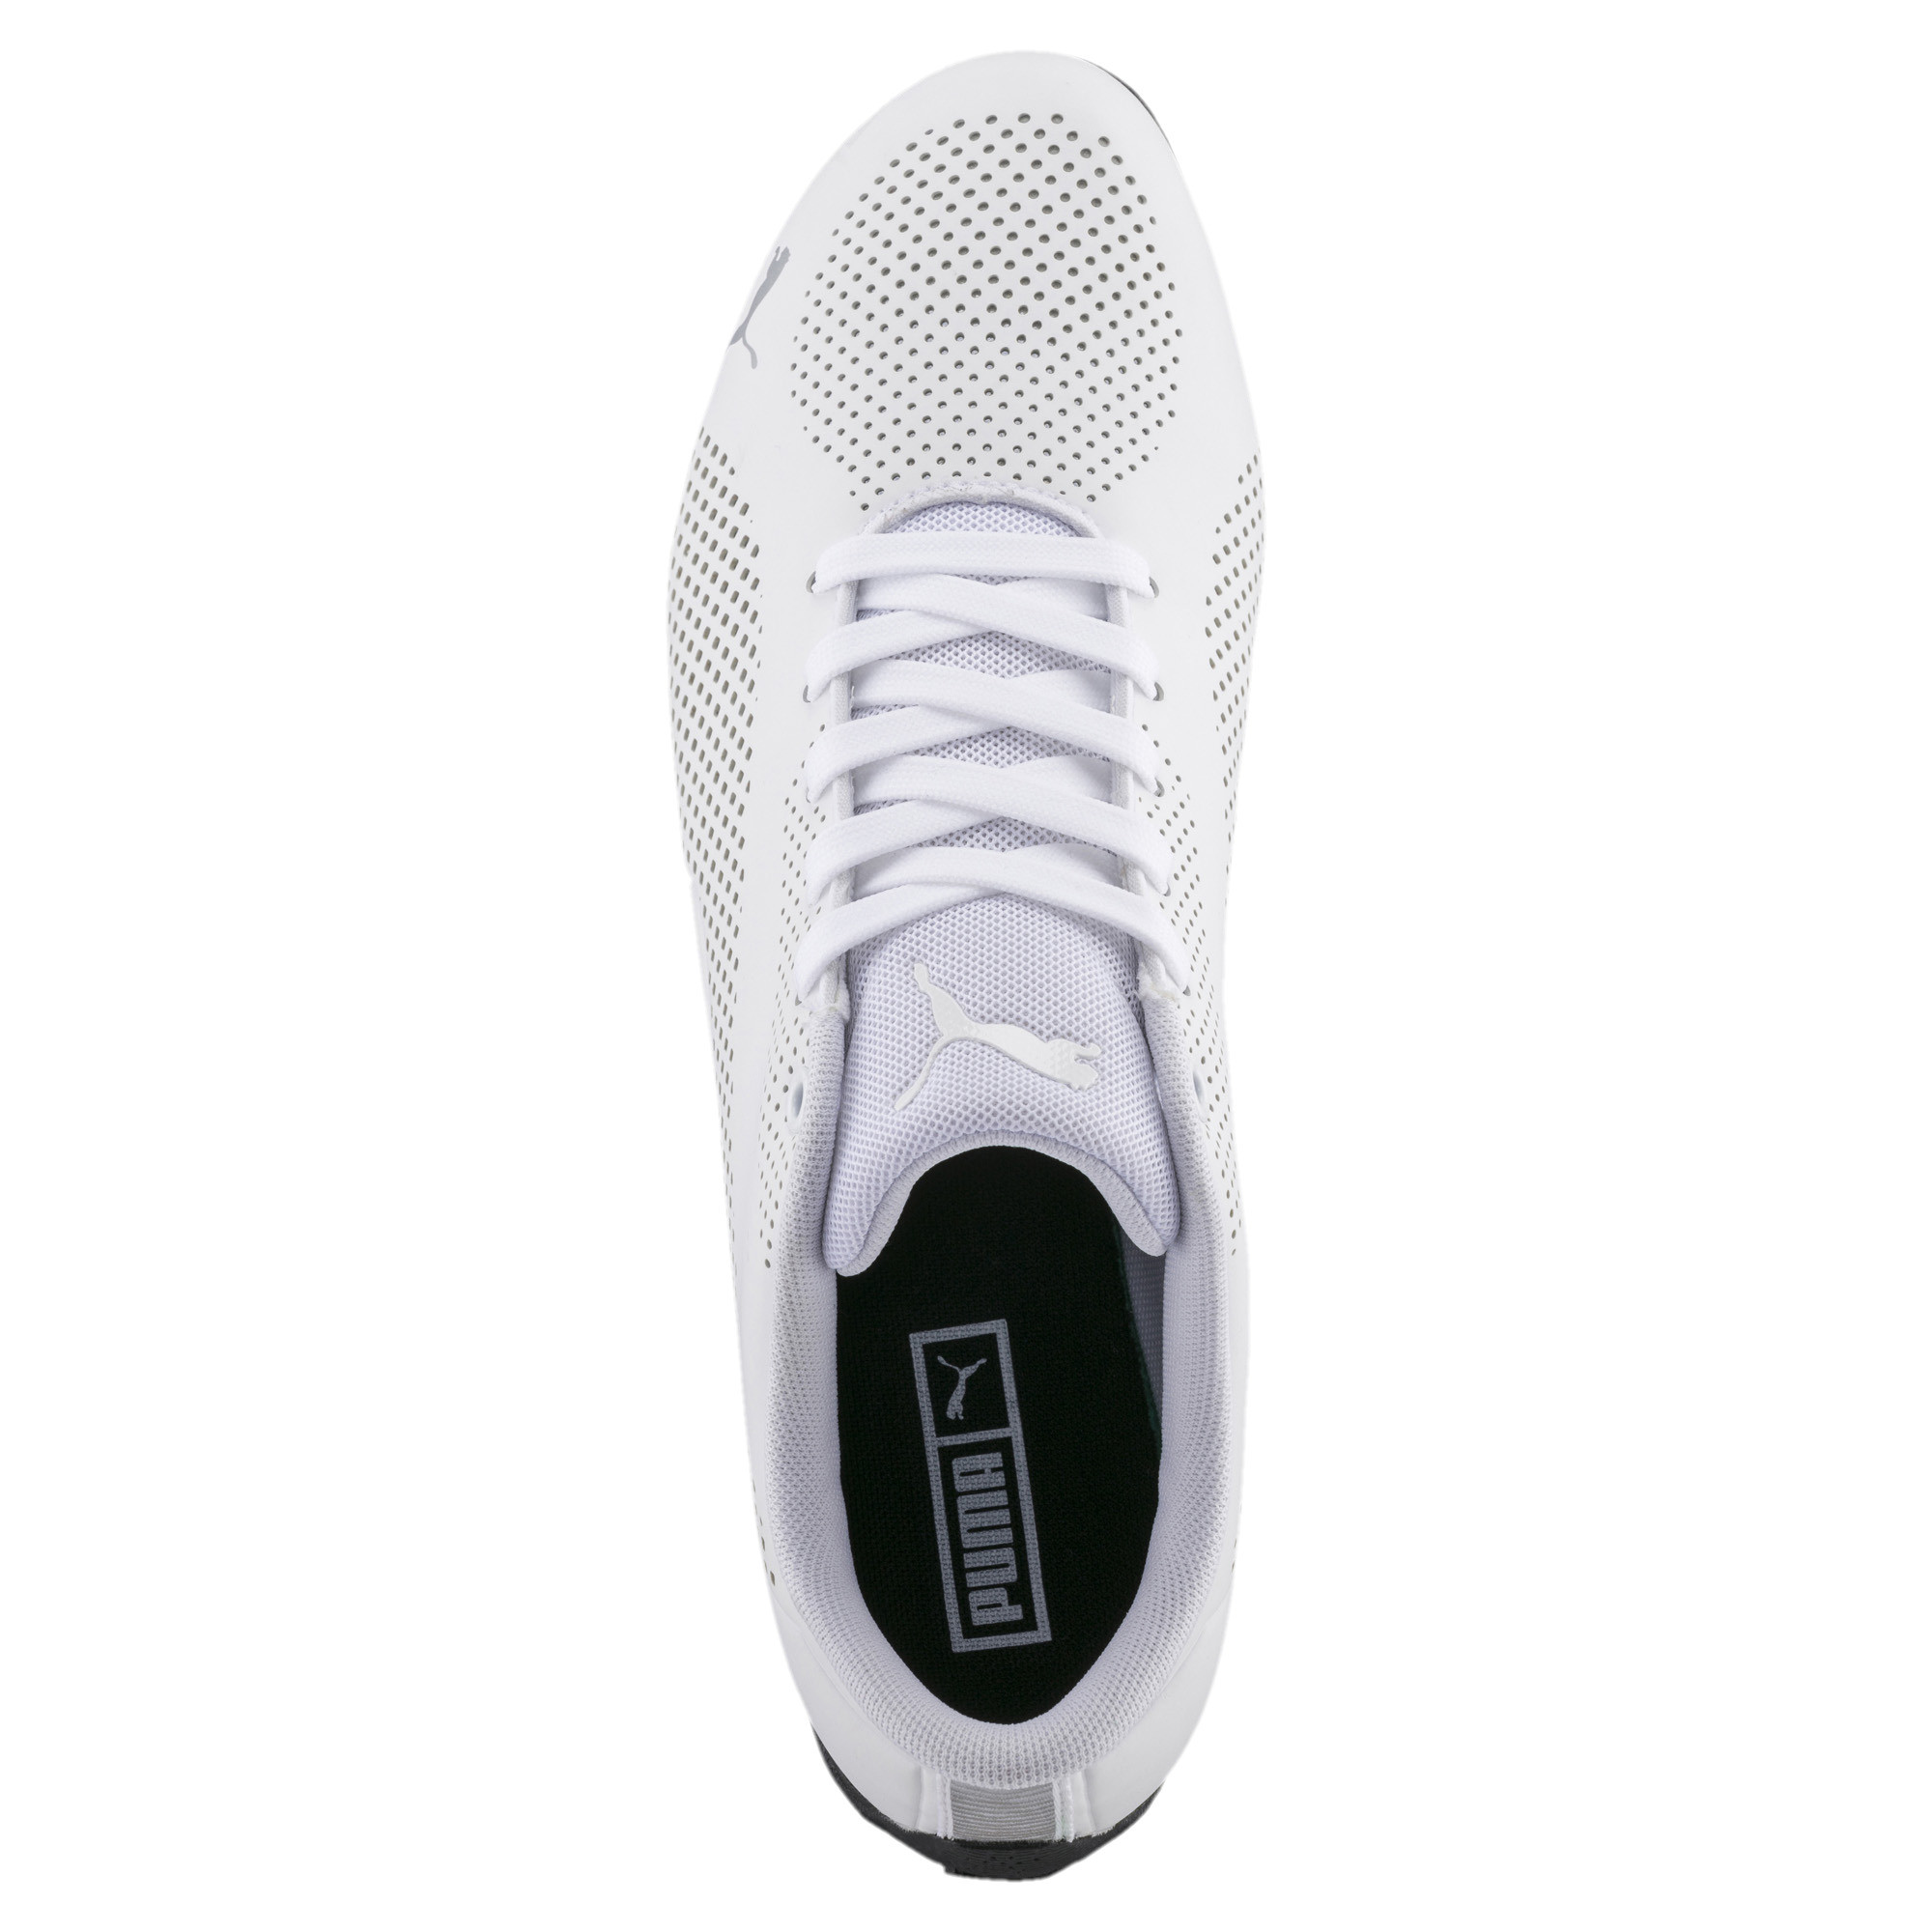 PUMA-Drift-Cat-Ultra-Reflective-Men-039-s-Shoes-Men-Shoe-Sport-Classics miniatura 16